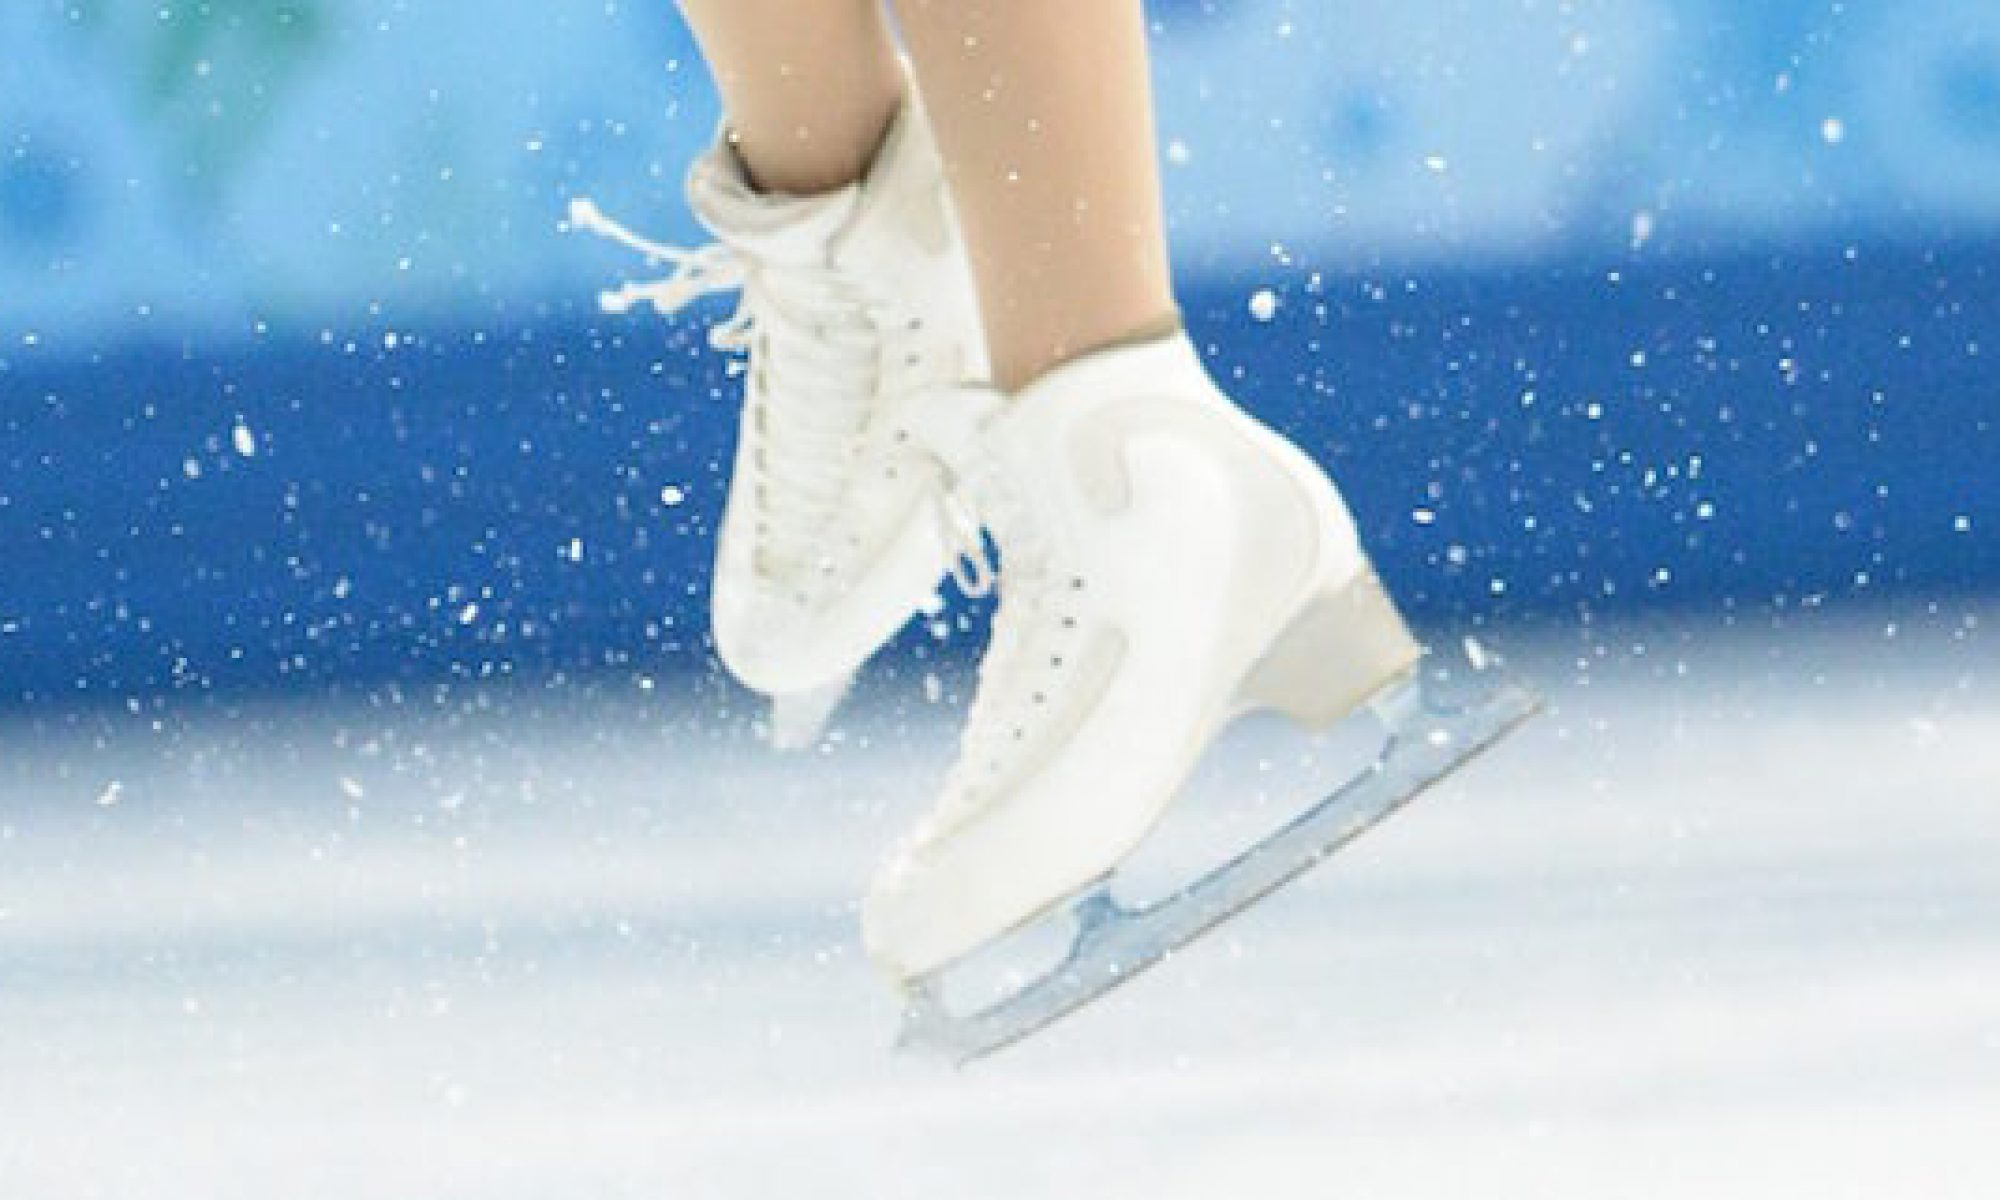 Fall Season Wallpapers Hd Thorold Figure Skating Club The Thorold Figure Skating Club